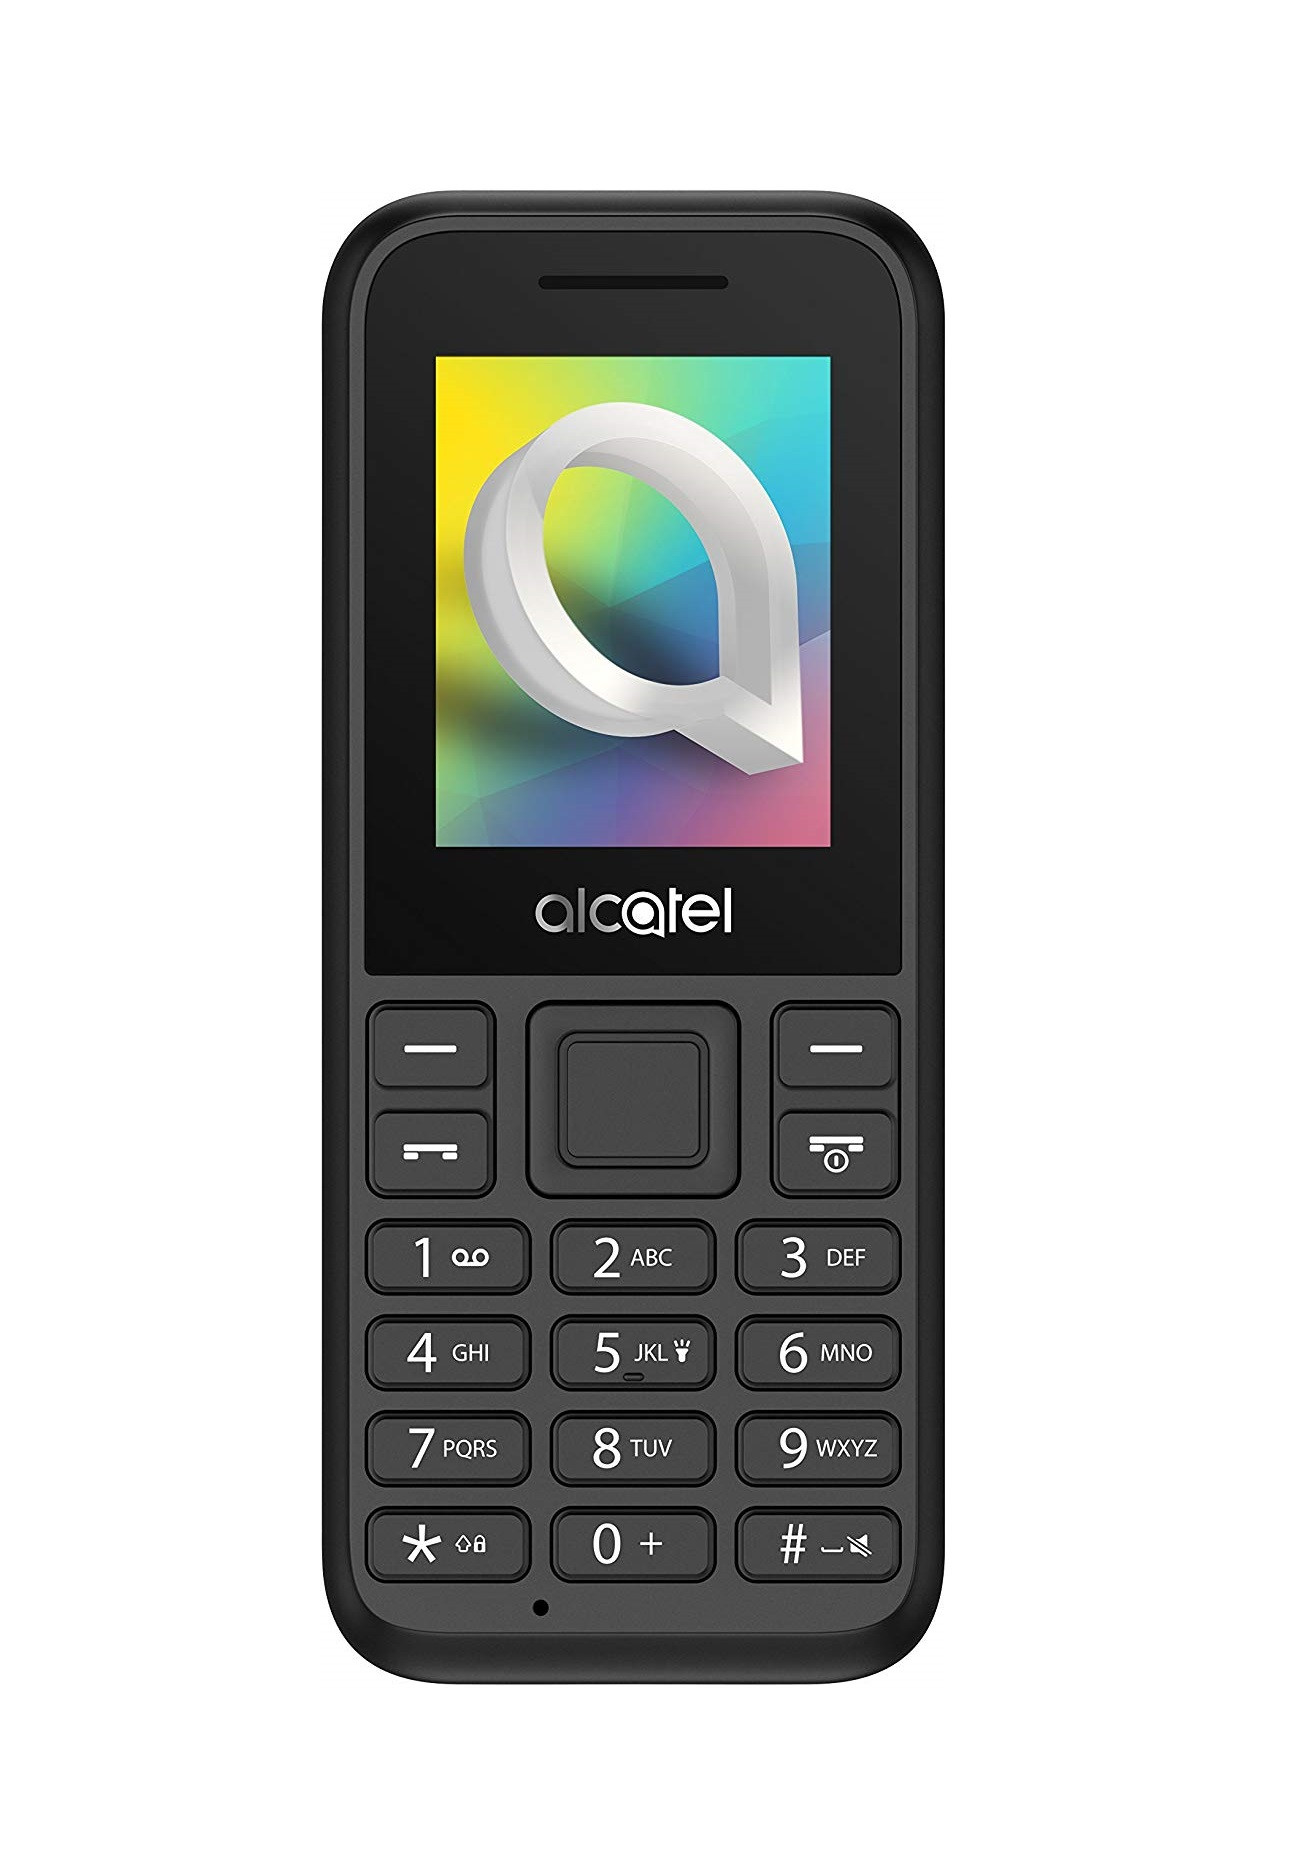 ALCATEL CELLULARE GSM 10-66D DUAL SIM 1,8 MICROSD 16GB BLACK